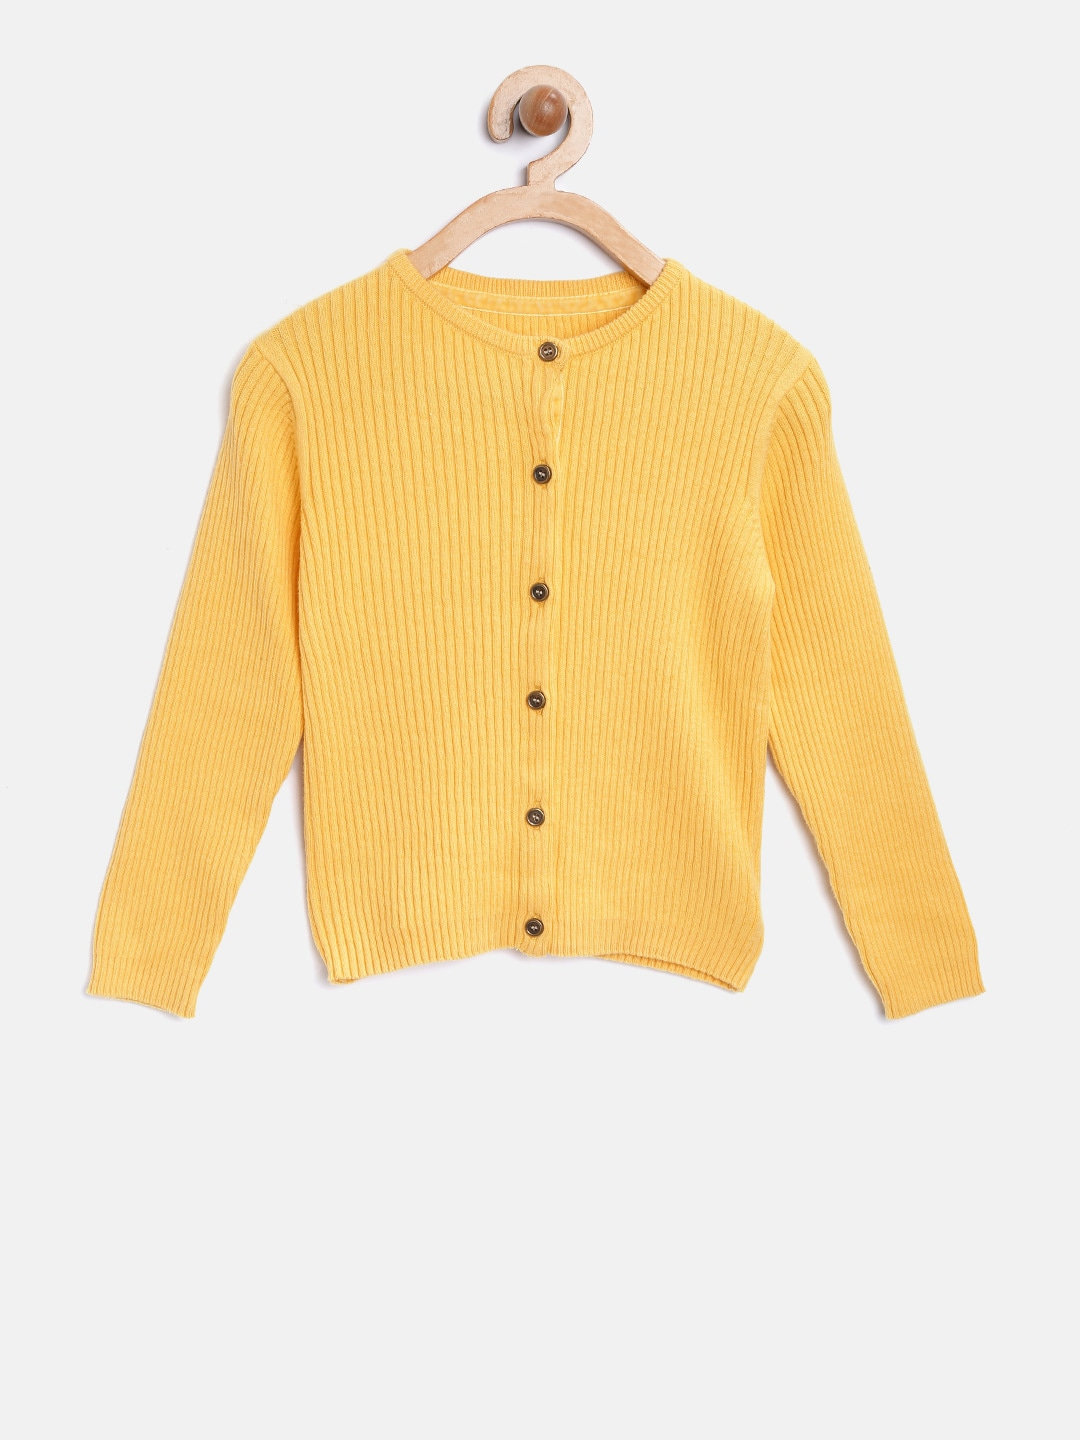 Girl's Sweaters - Buy Sweaters for Girls Online in India | Myntra